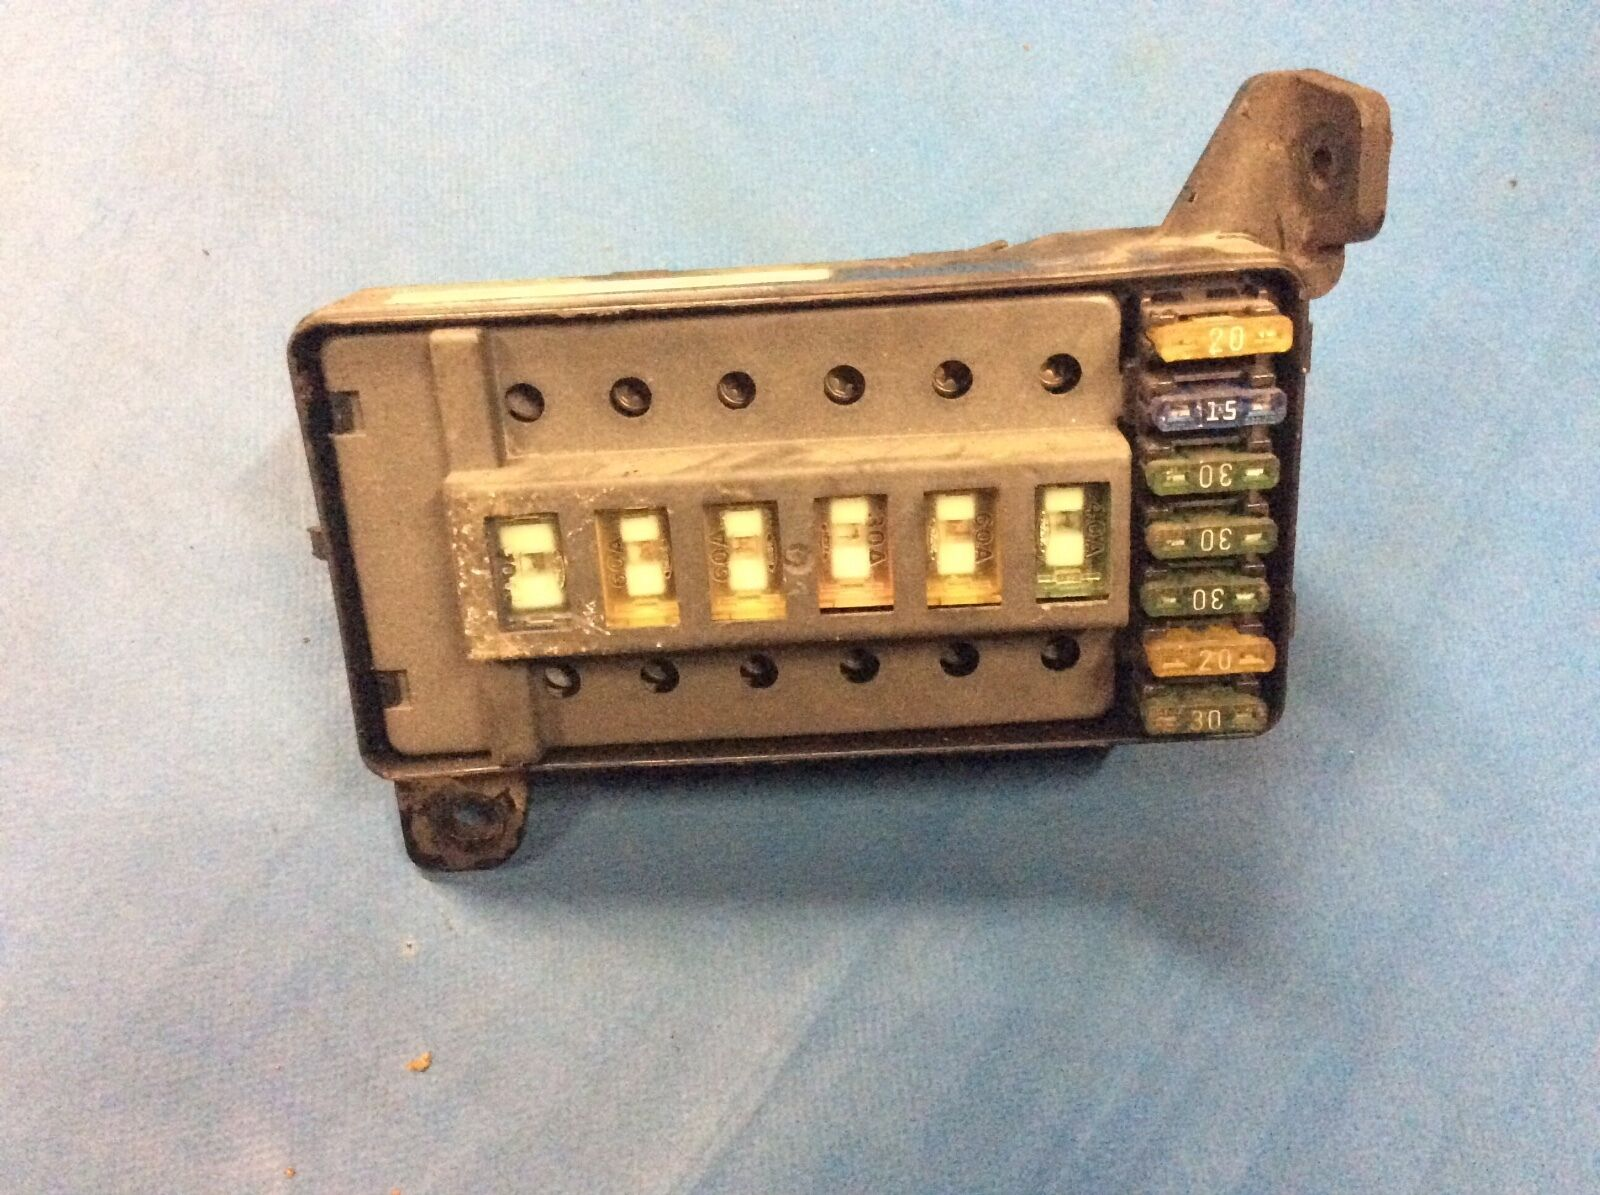 hight resolution of land rover discovery 1 300tdi engine fuse box part amr1553 breakeryard com